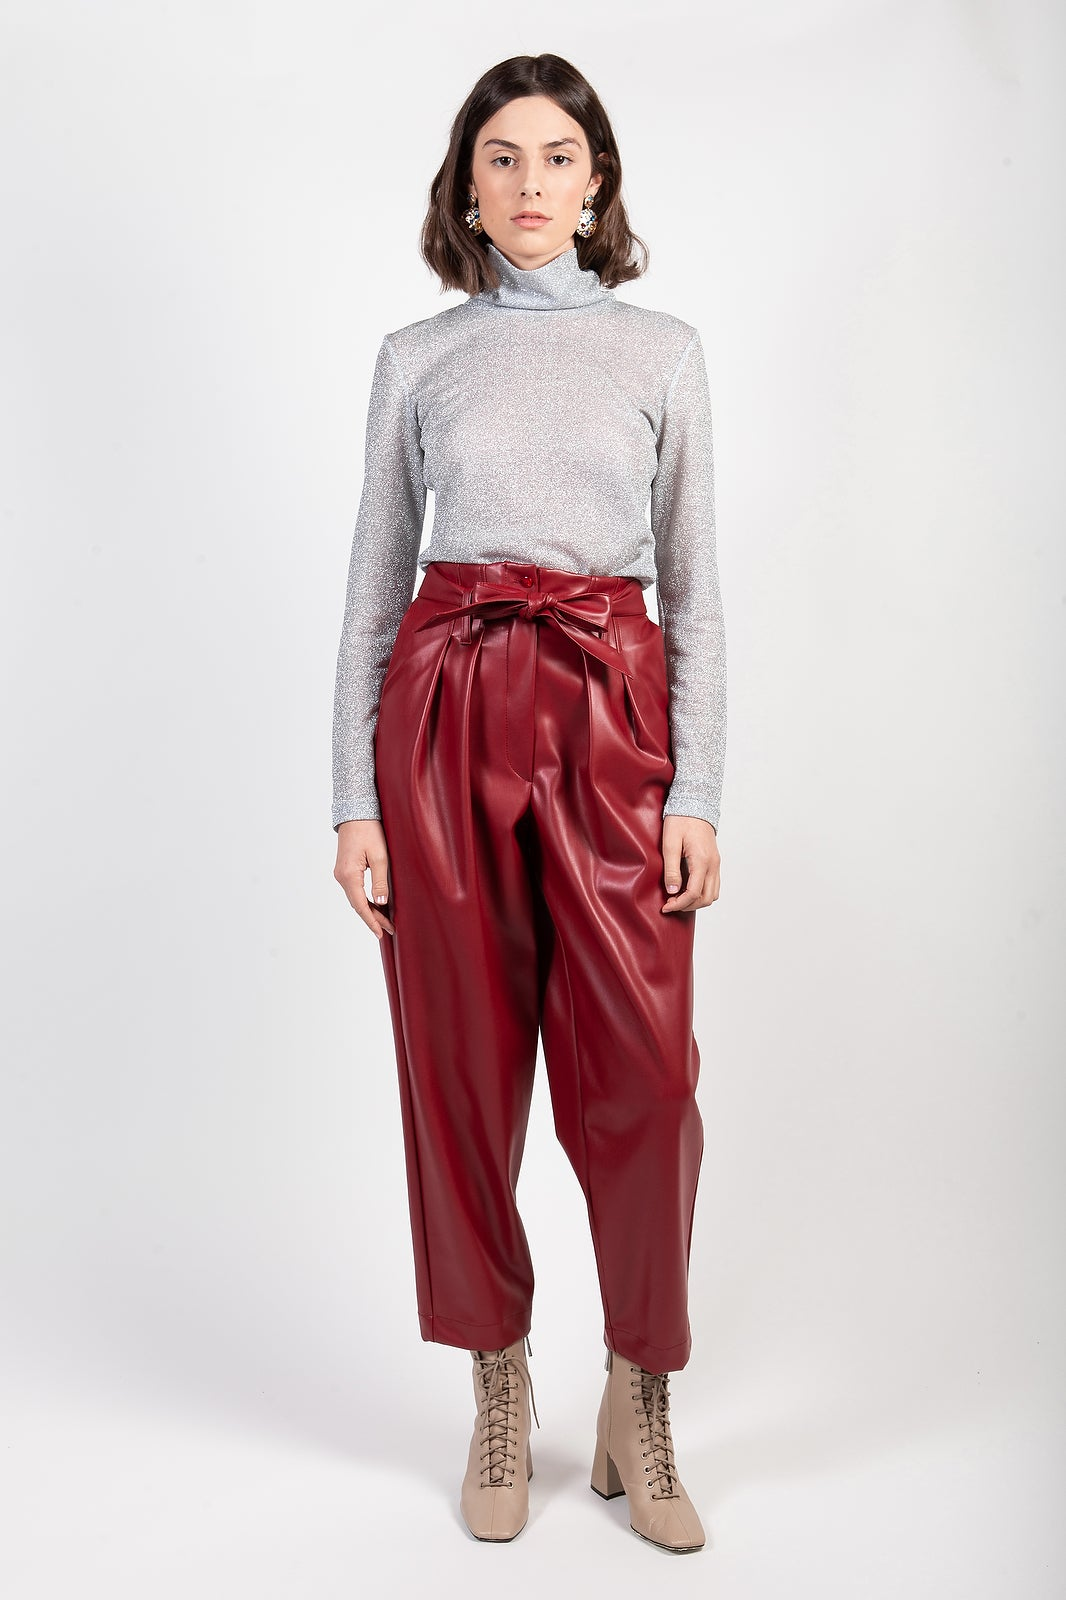 Image of PILLY ECOPELLE ROSSO €169 - 30%